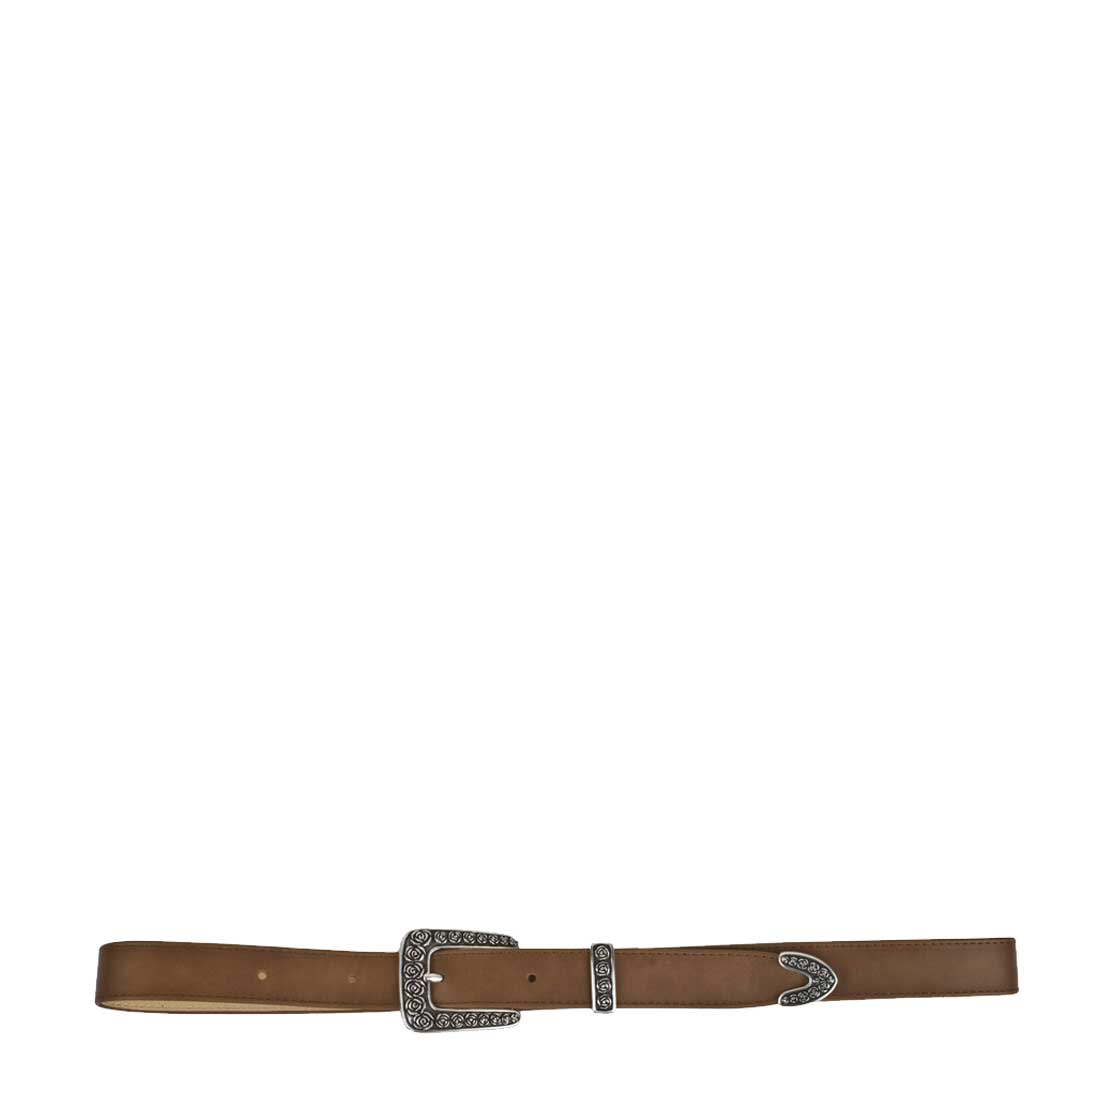 Rose Tan Leather Belt